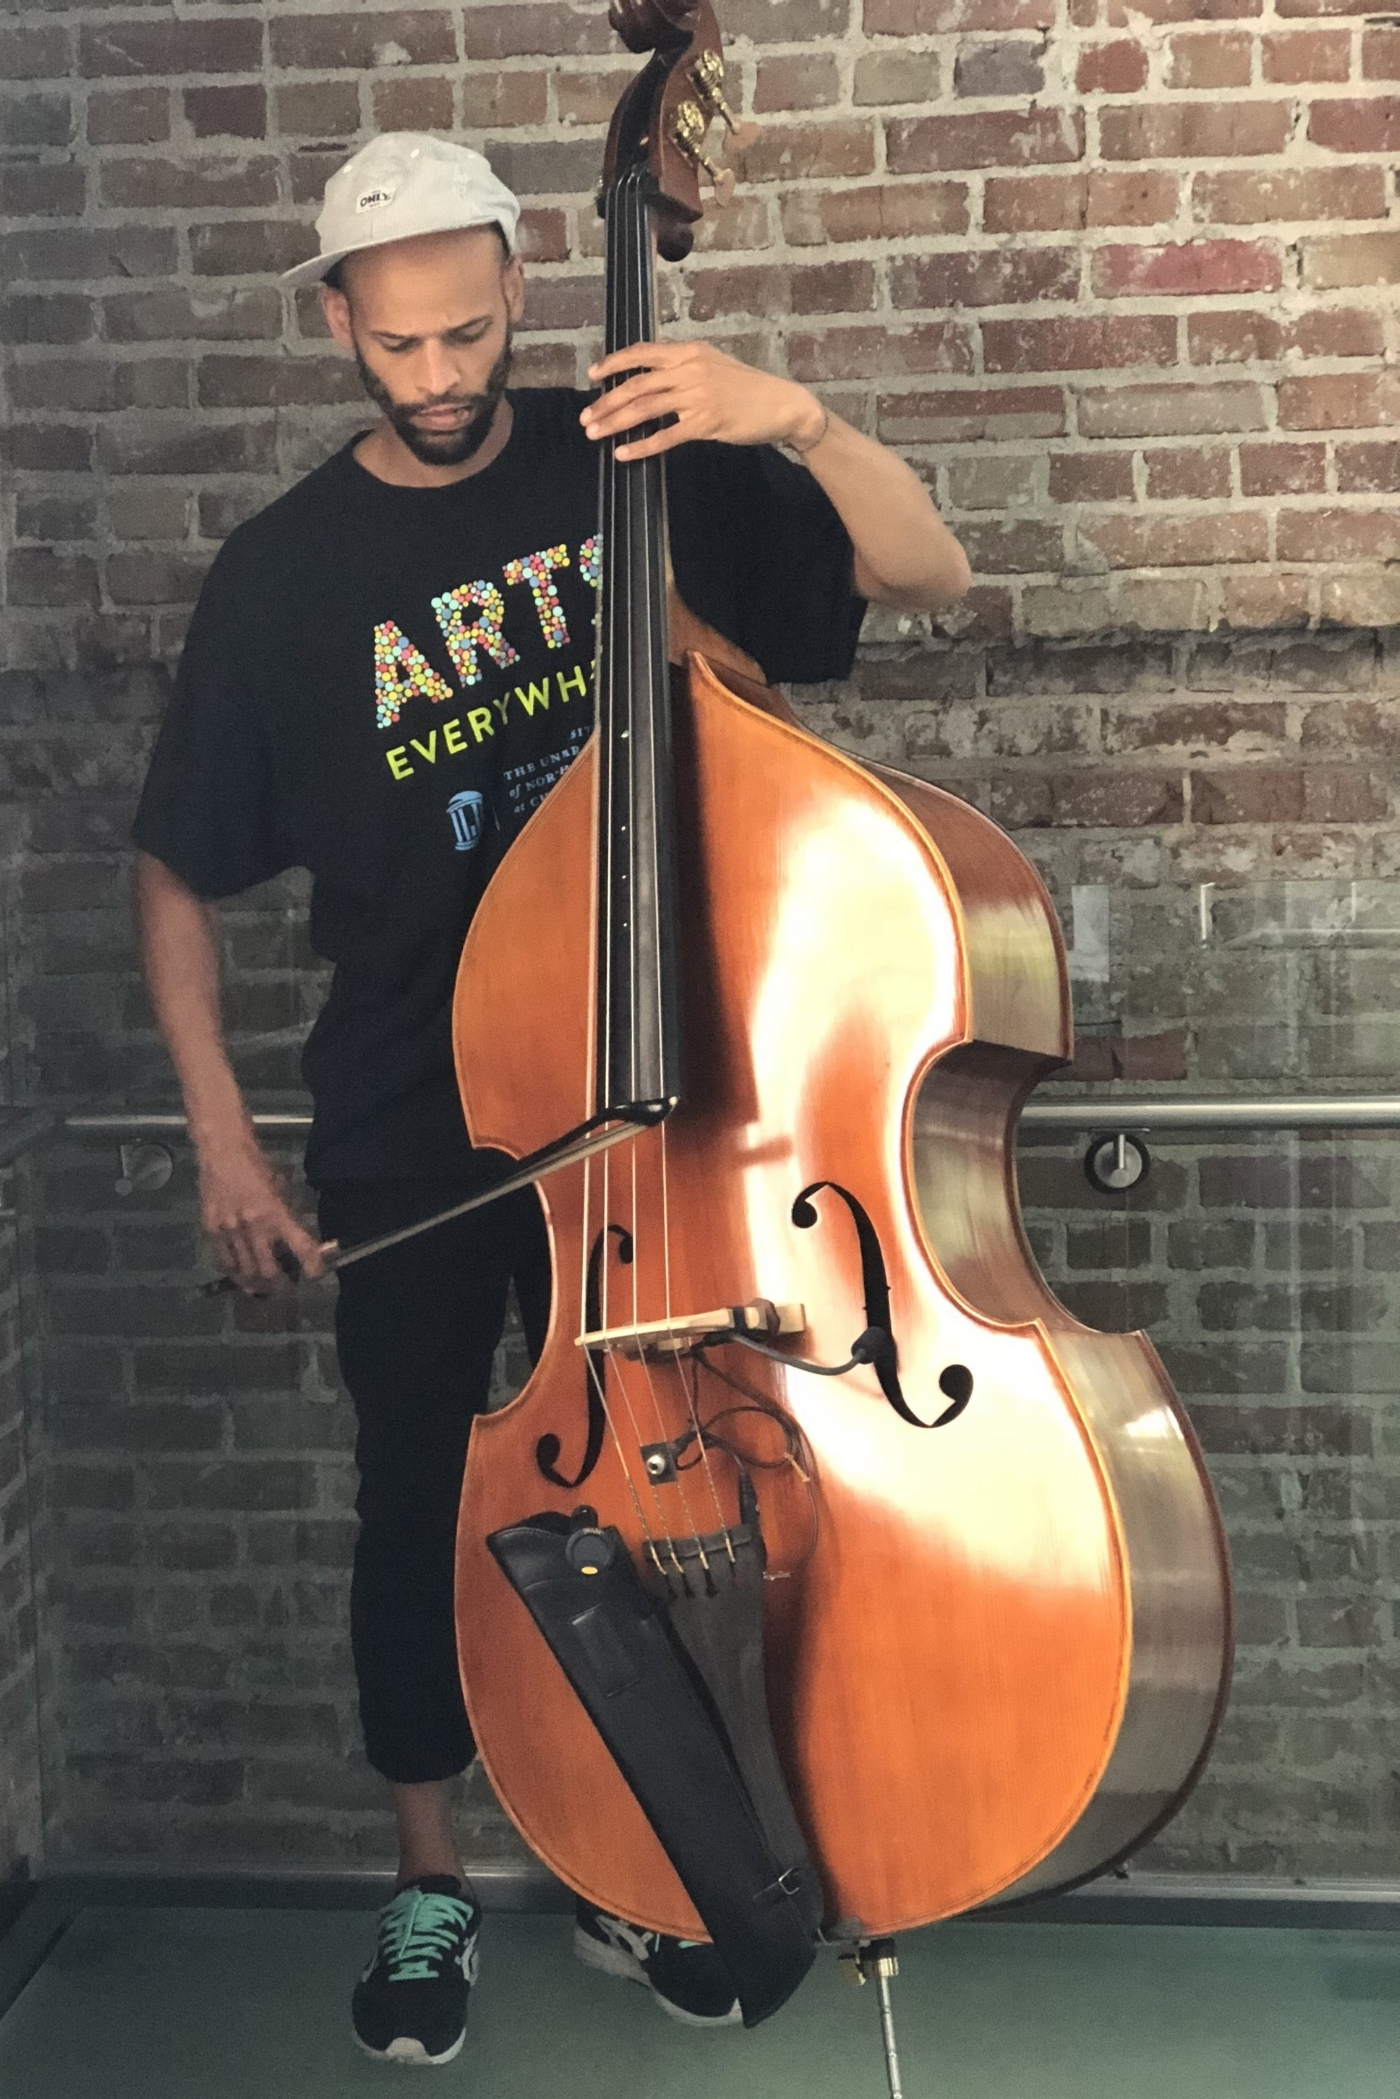 - I'm a composer, performer, and multi-instrumentalist focusing on upright and electric bass, as well as a member of the award winning tap dance company, Dorrance Dance, the indie band Darwin Deez, and co-creator of Music From The Sole, an afro-Brazilian tap dance and live band show. I learned rhythm and blues at an early age from a family of musicians where everyone could play at least a little piano and everyone was expected to sing. A Tucson, AZ native, I studied at Bard College and have been working as a professional musician in New York City for nearly two decades.